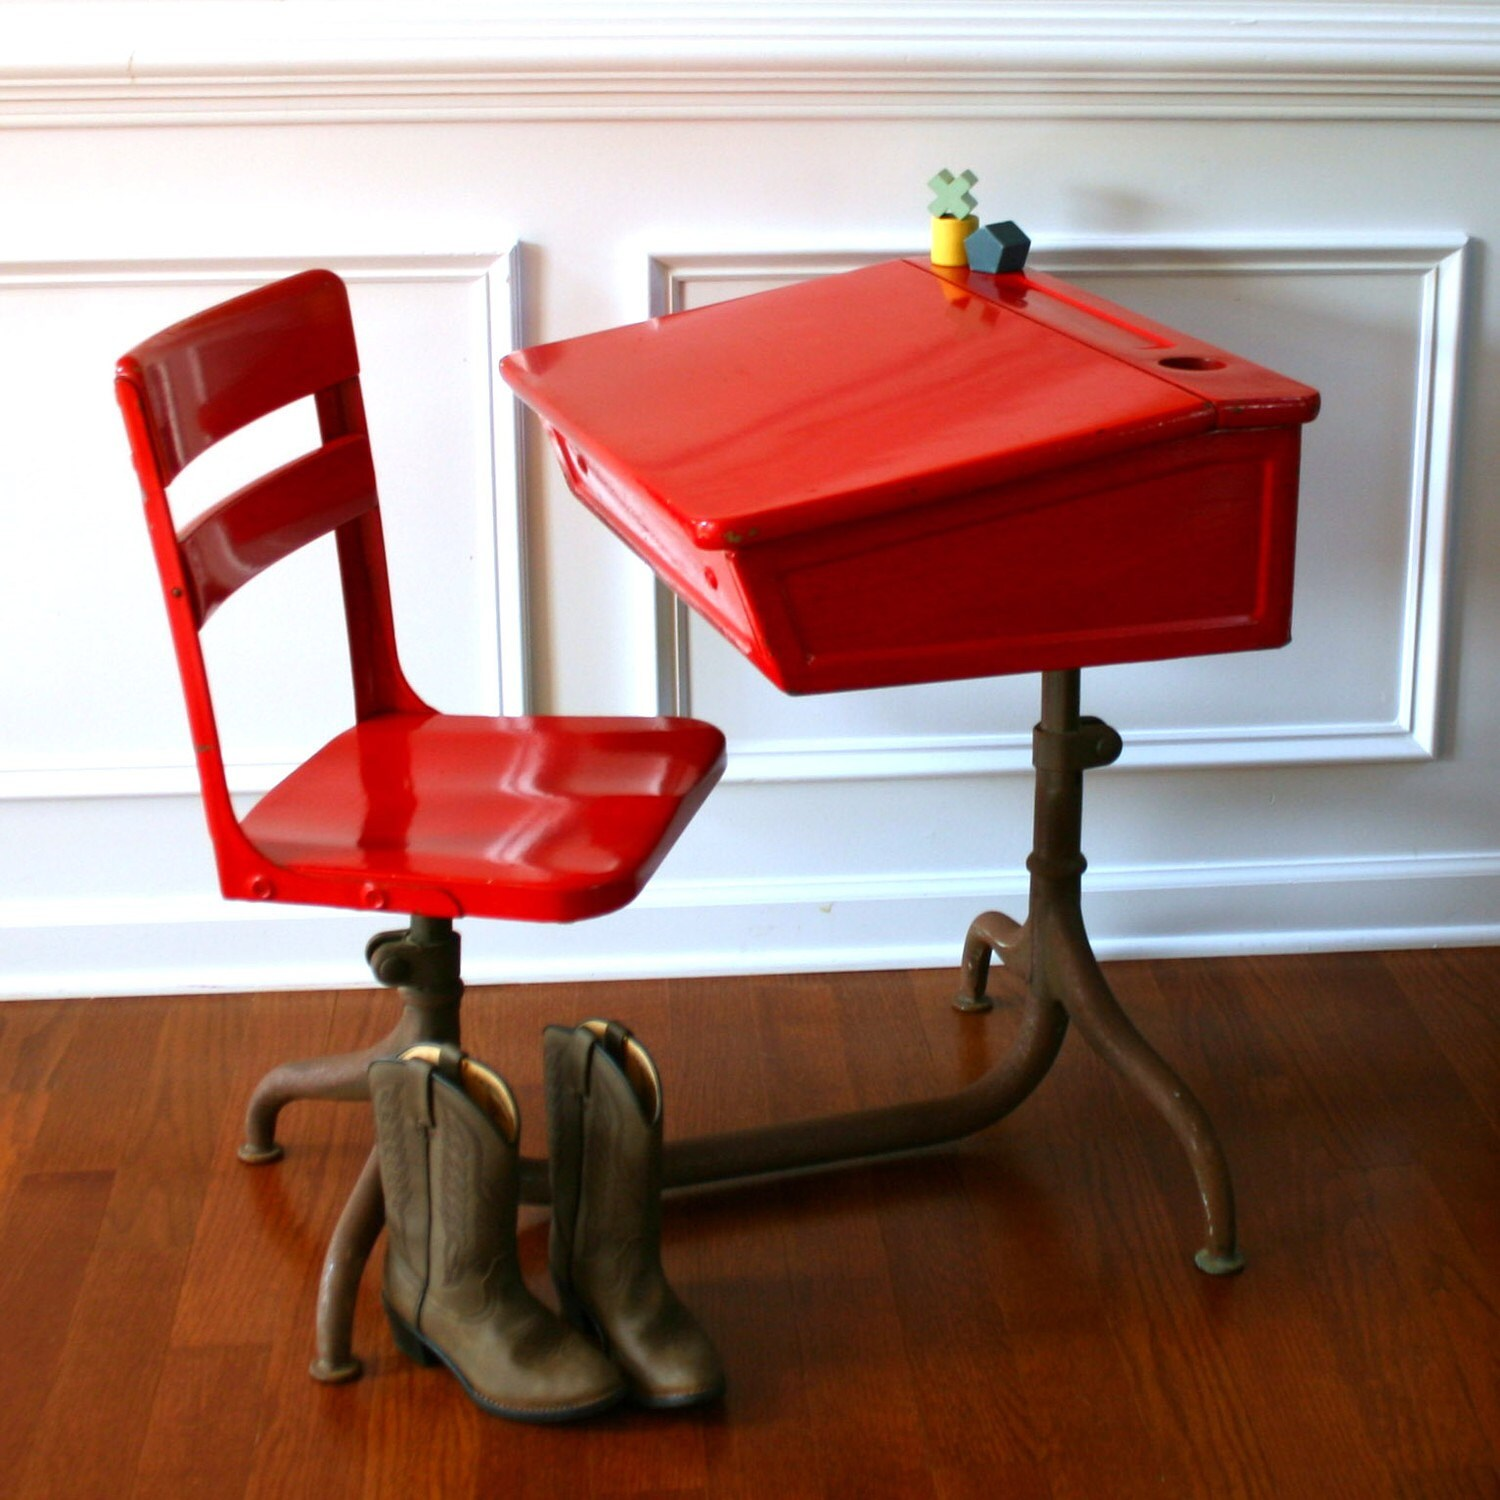 Inspired Learning. Vintage School Desk and Chair. Metal. Wooden. Fire Engine Red Elementary. Vintage Antiques by Rhapsody Attic on Etsy.